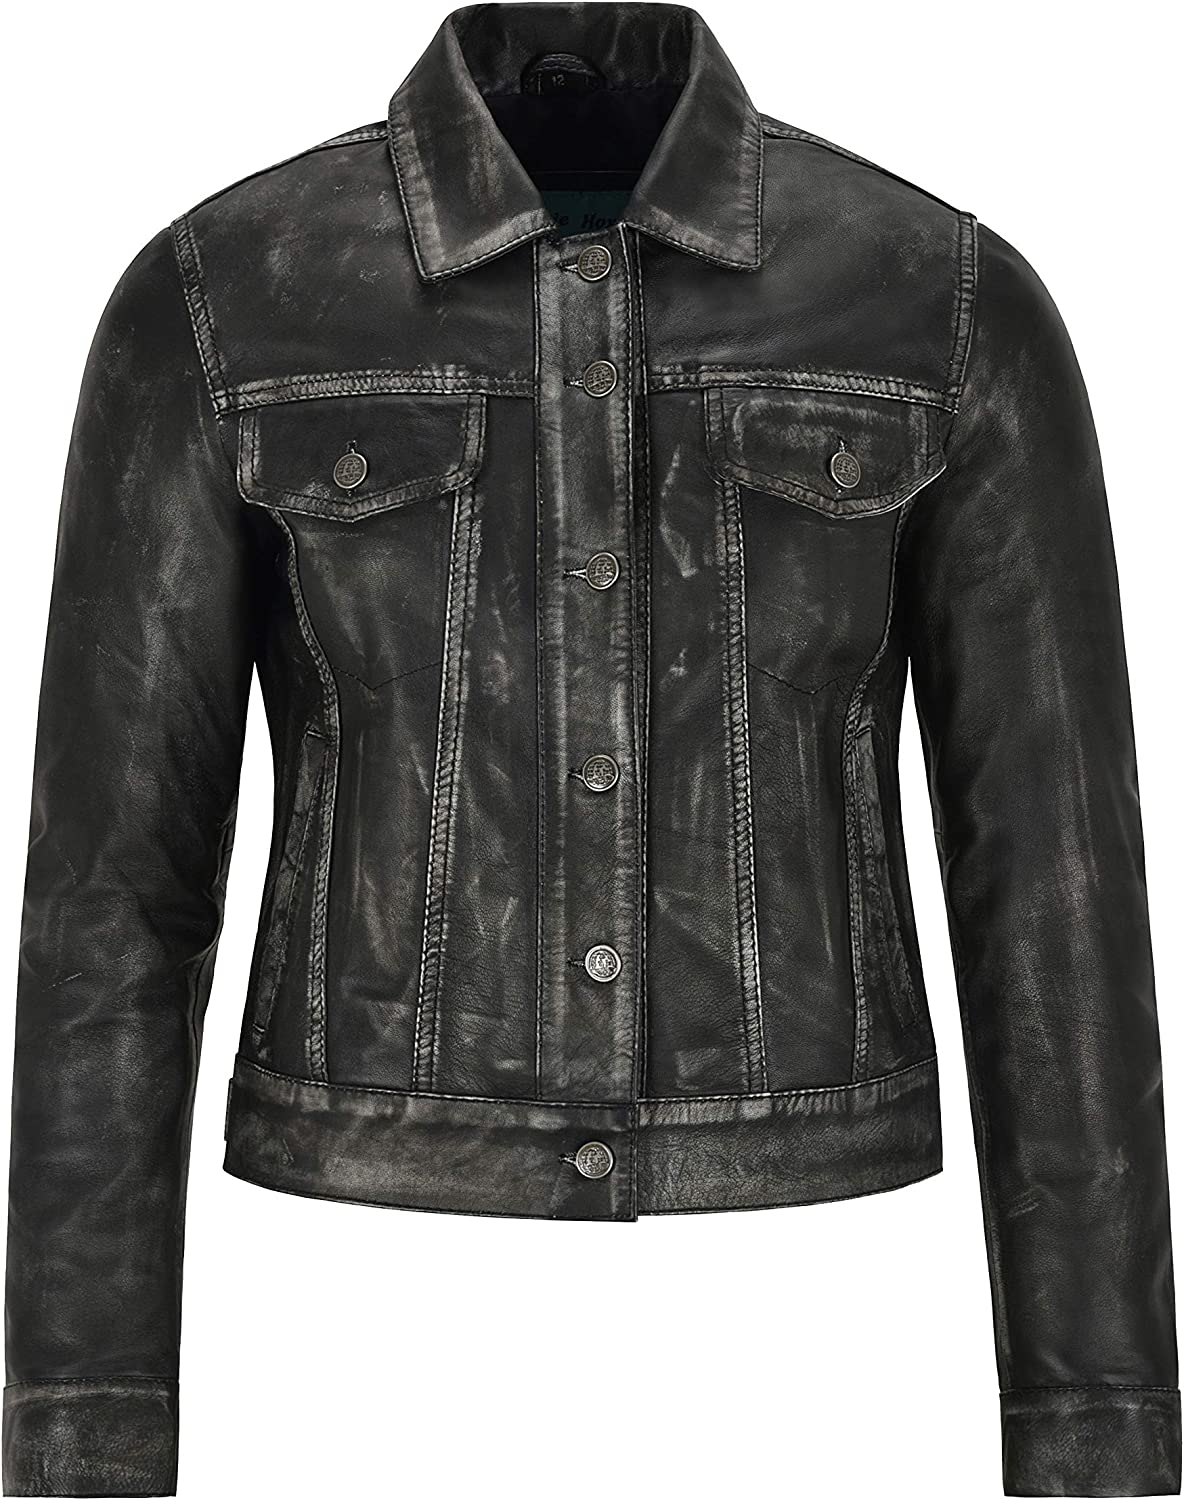 Carrie CH Hoxton Women's Trucker Real Leather Vintage Jacket Washed Leather Shirt Jacket 1680